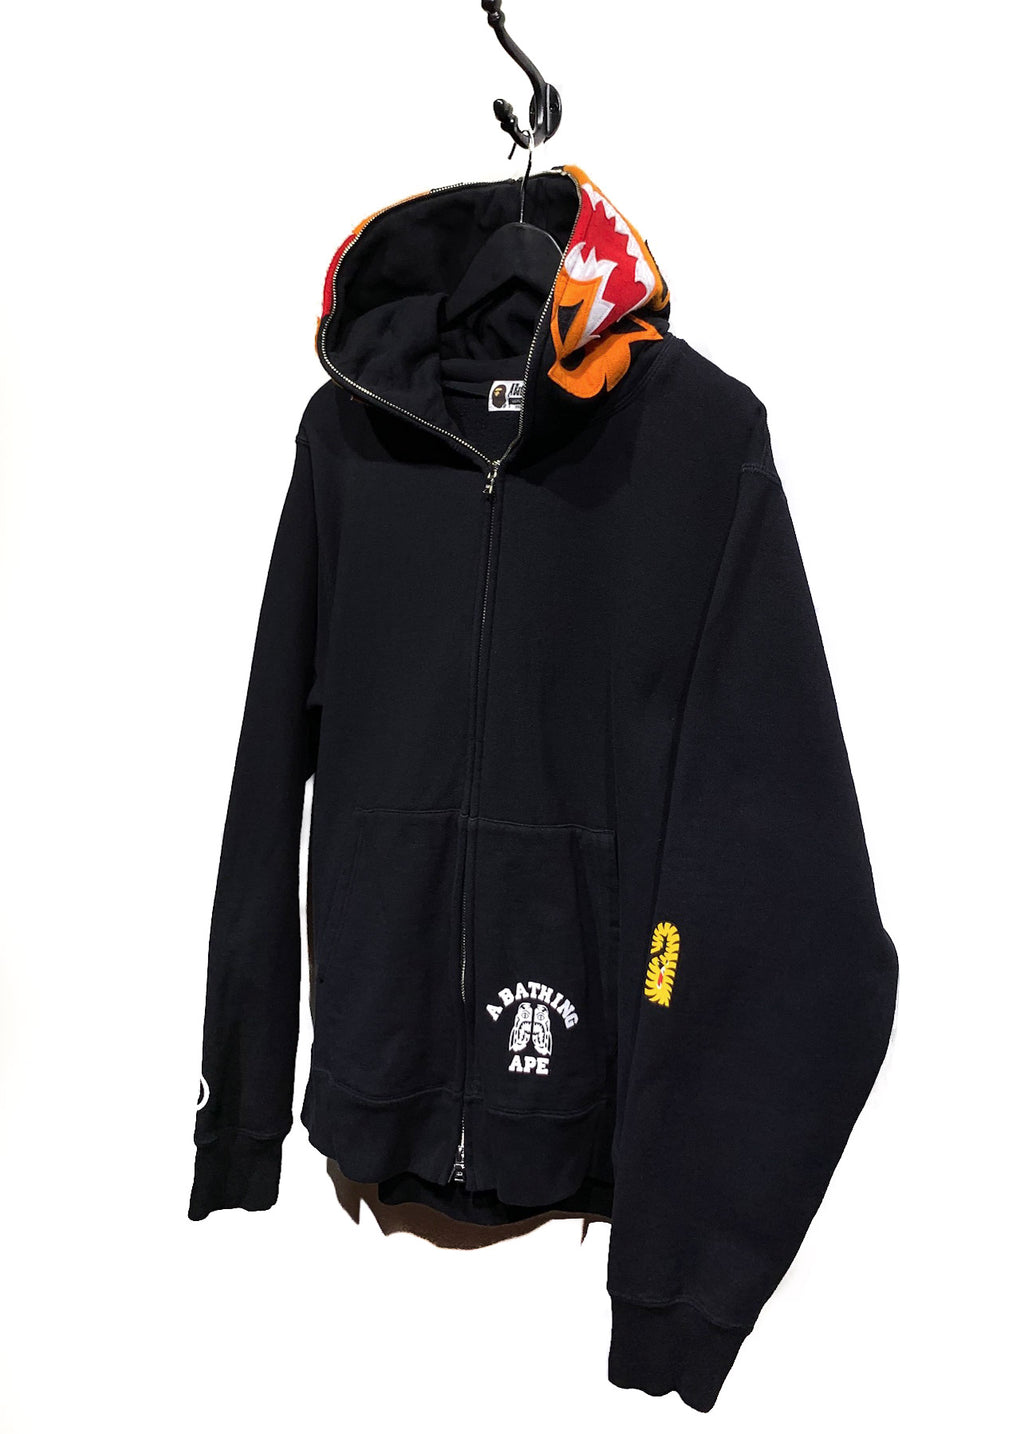 Bape Black Tiger Shark Funthera Militia Embroidered Zip-up Hoodie